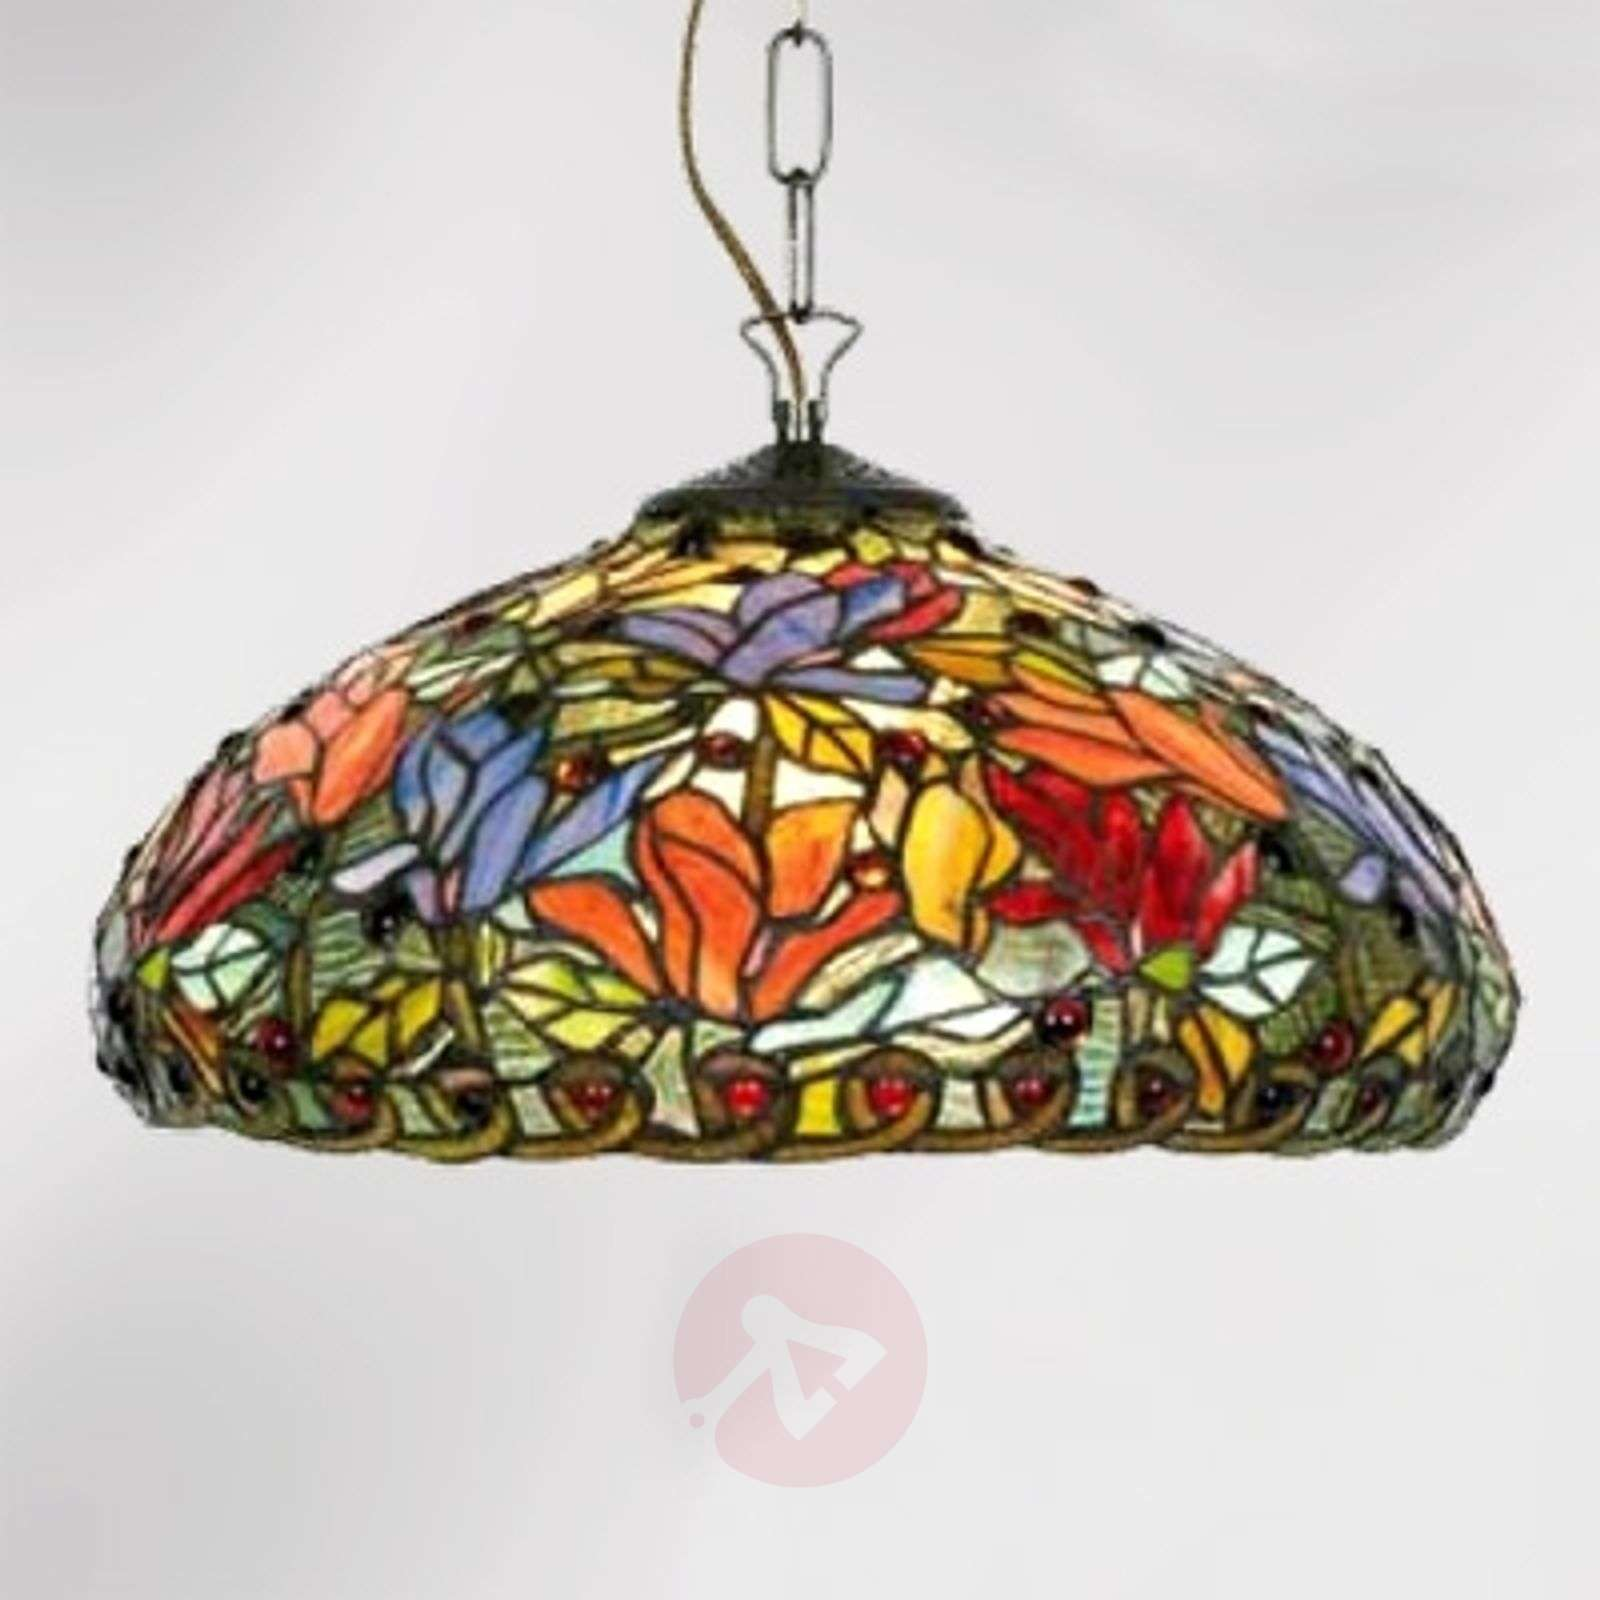 Floral hanging light Elaine, Tiffany-style, 1-bulb-1032251-01